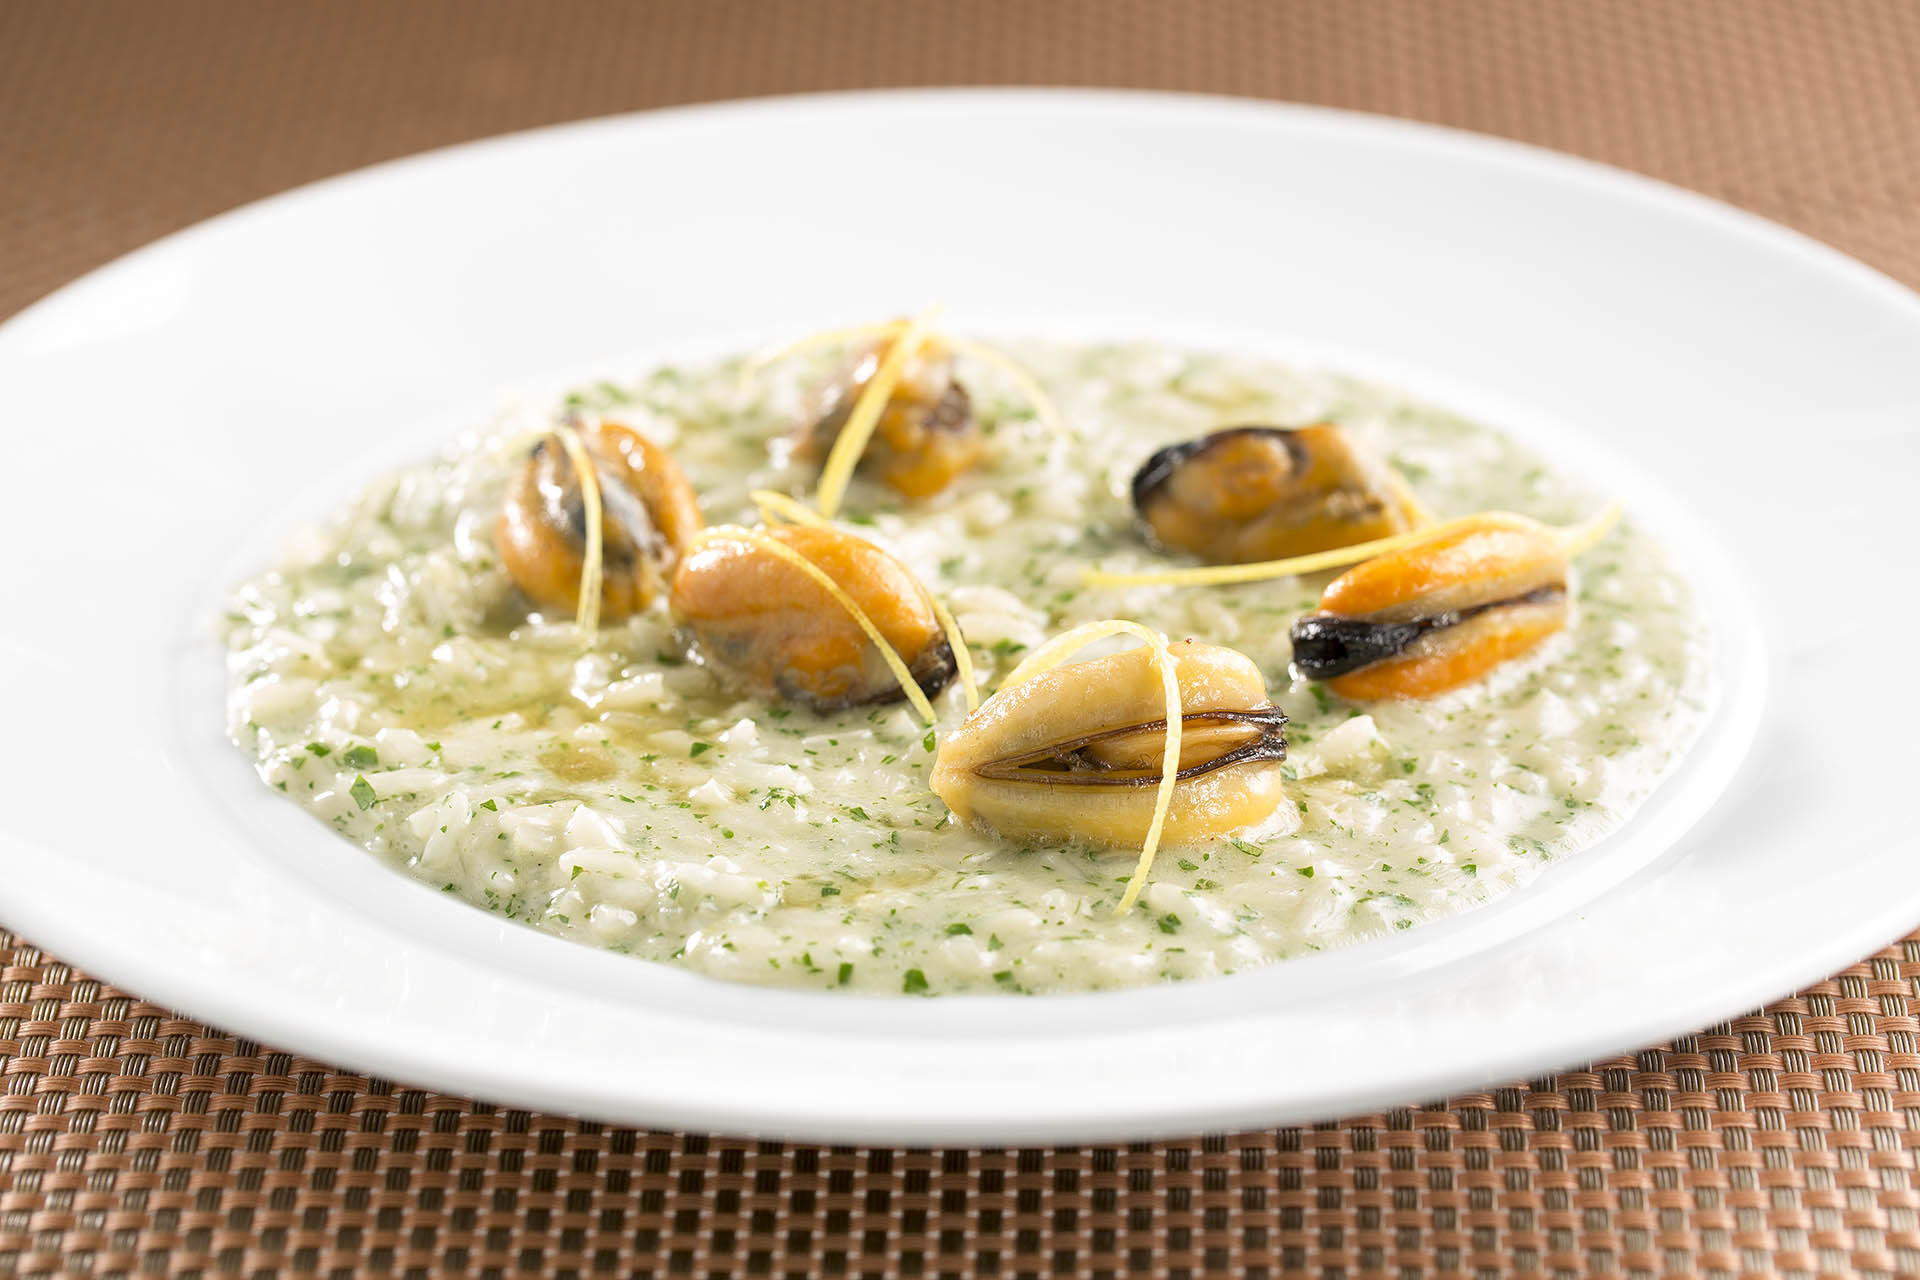 Risotto-Cozze-e-Limone_risotto_Salt-Spring-Mussels_and_lemon-zest_009-1920×1280-1374948304